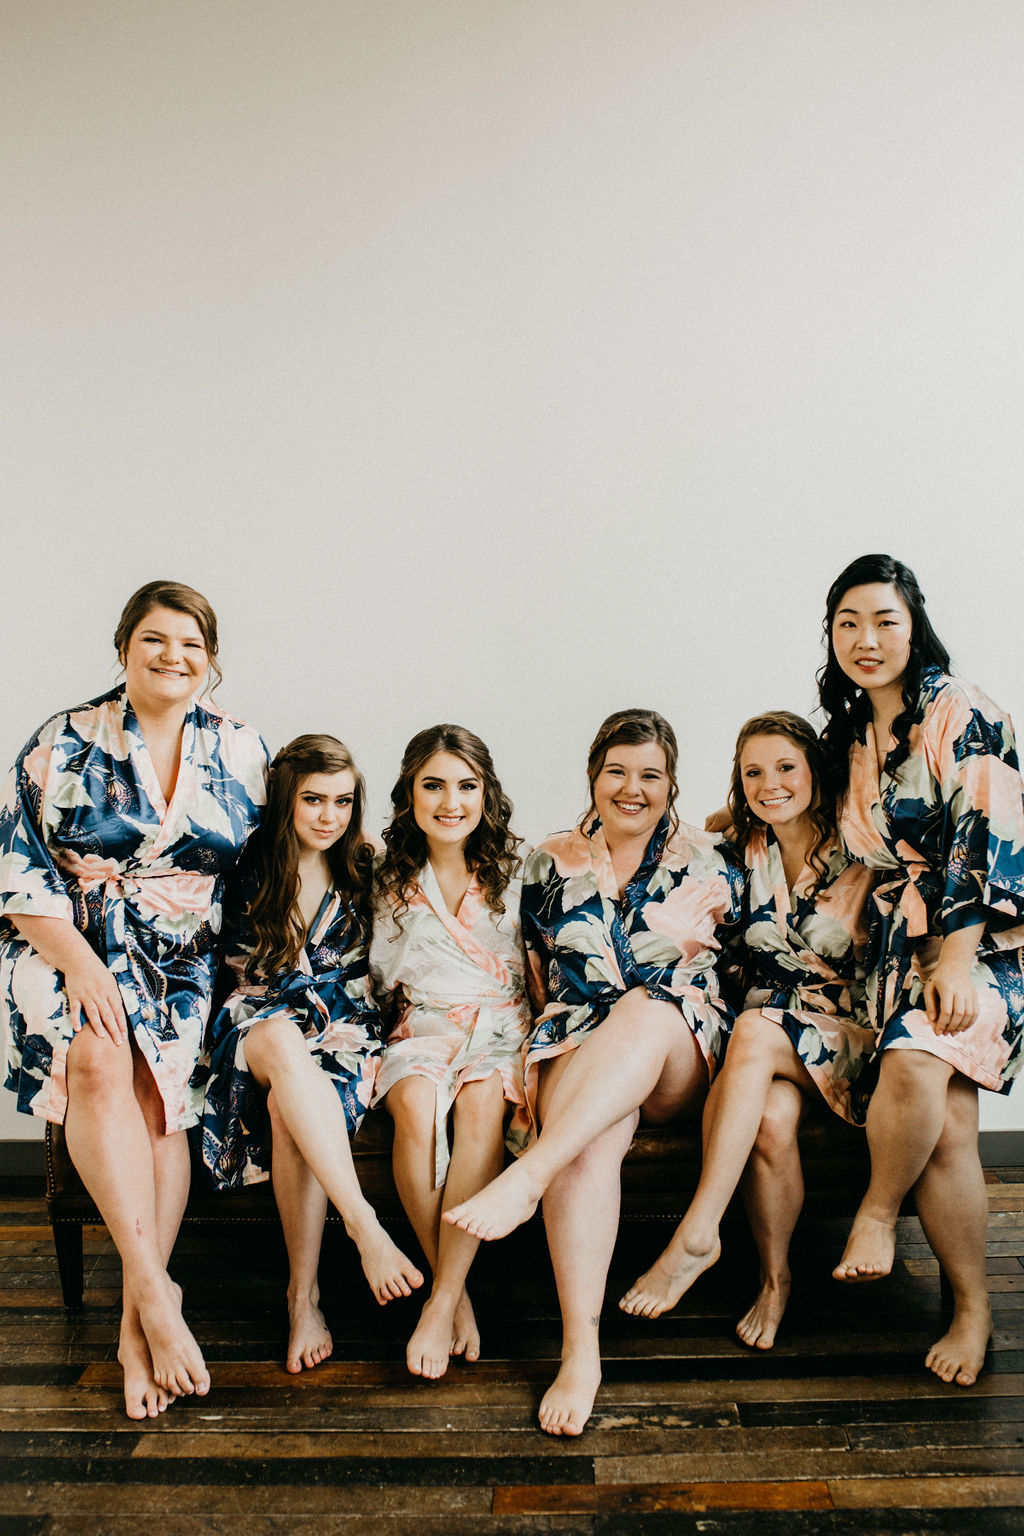 Bridesmaids getting ready before a wedding day